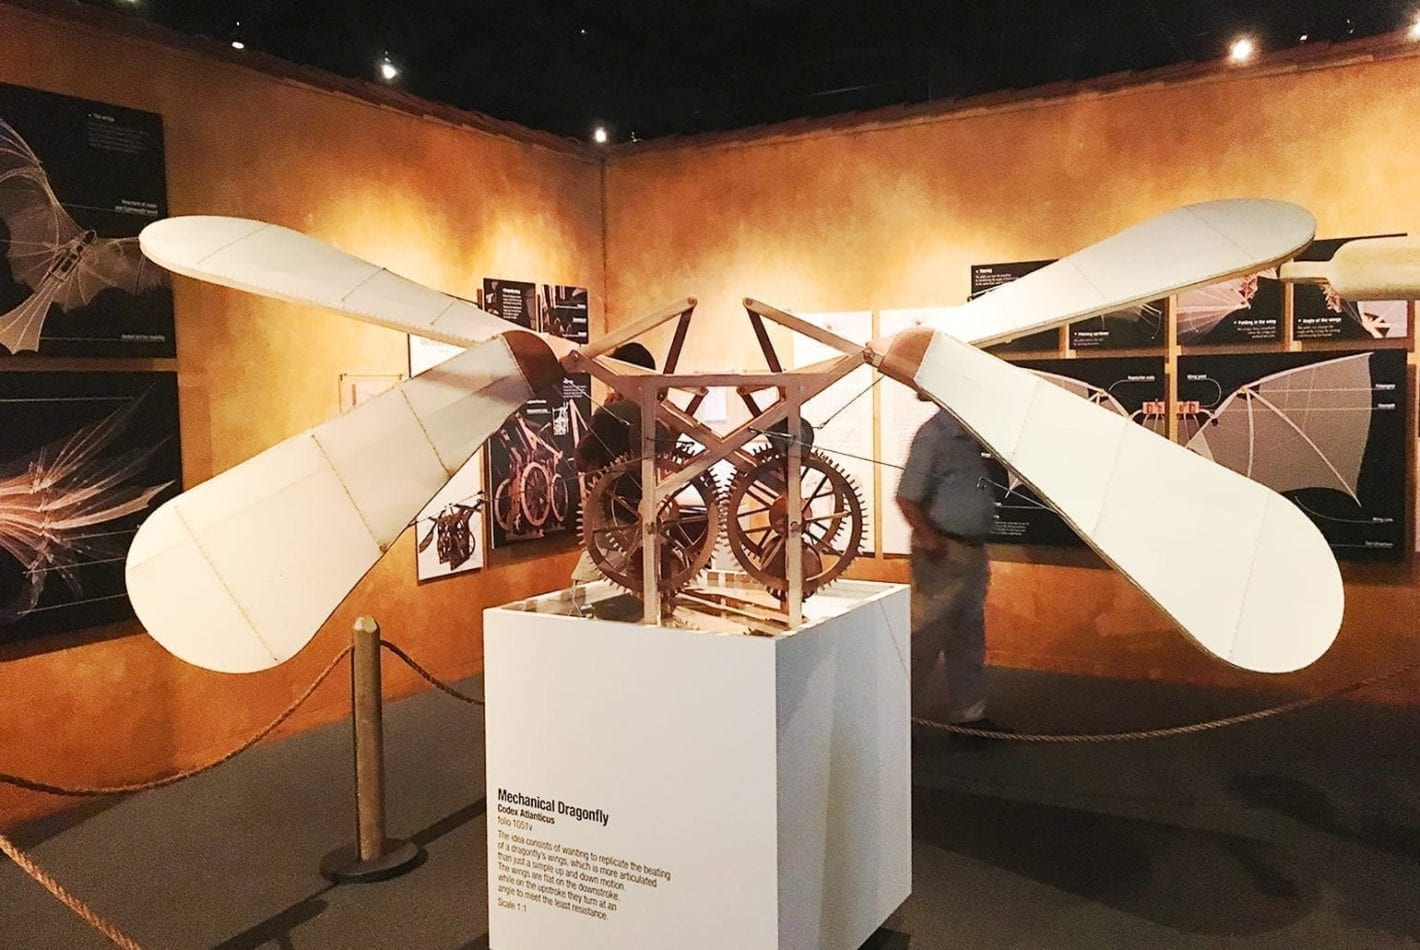 da vinci machines exhibit